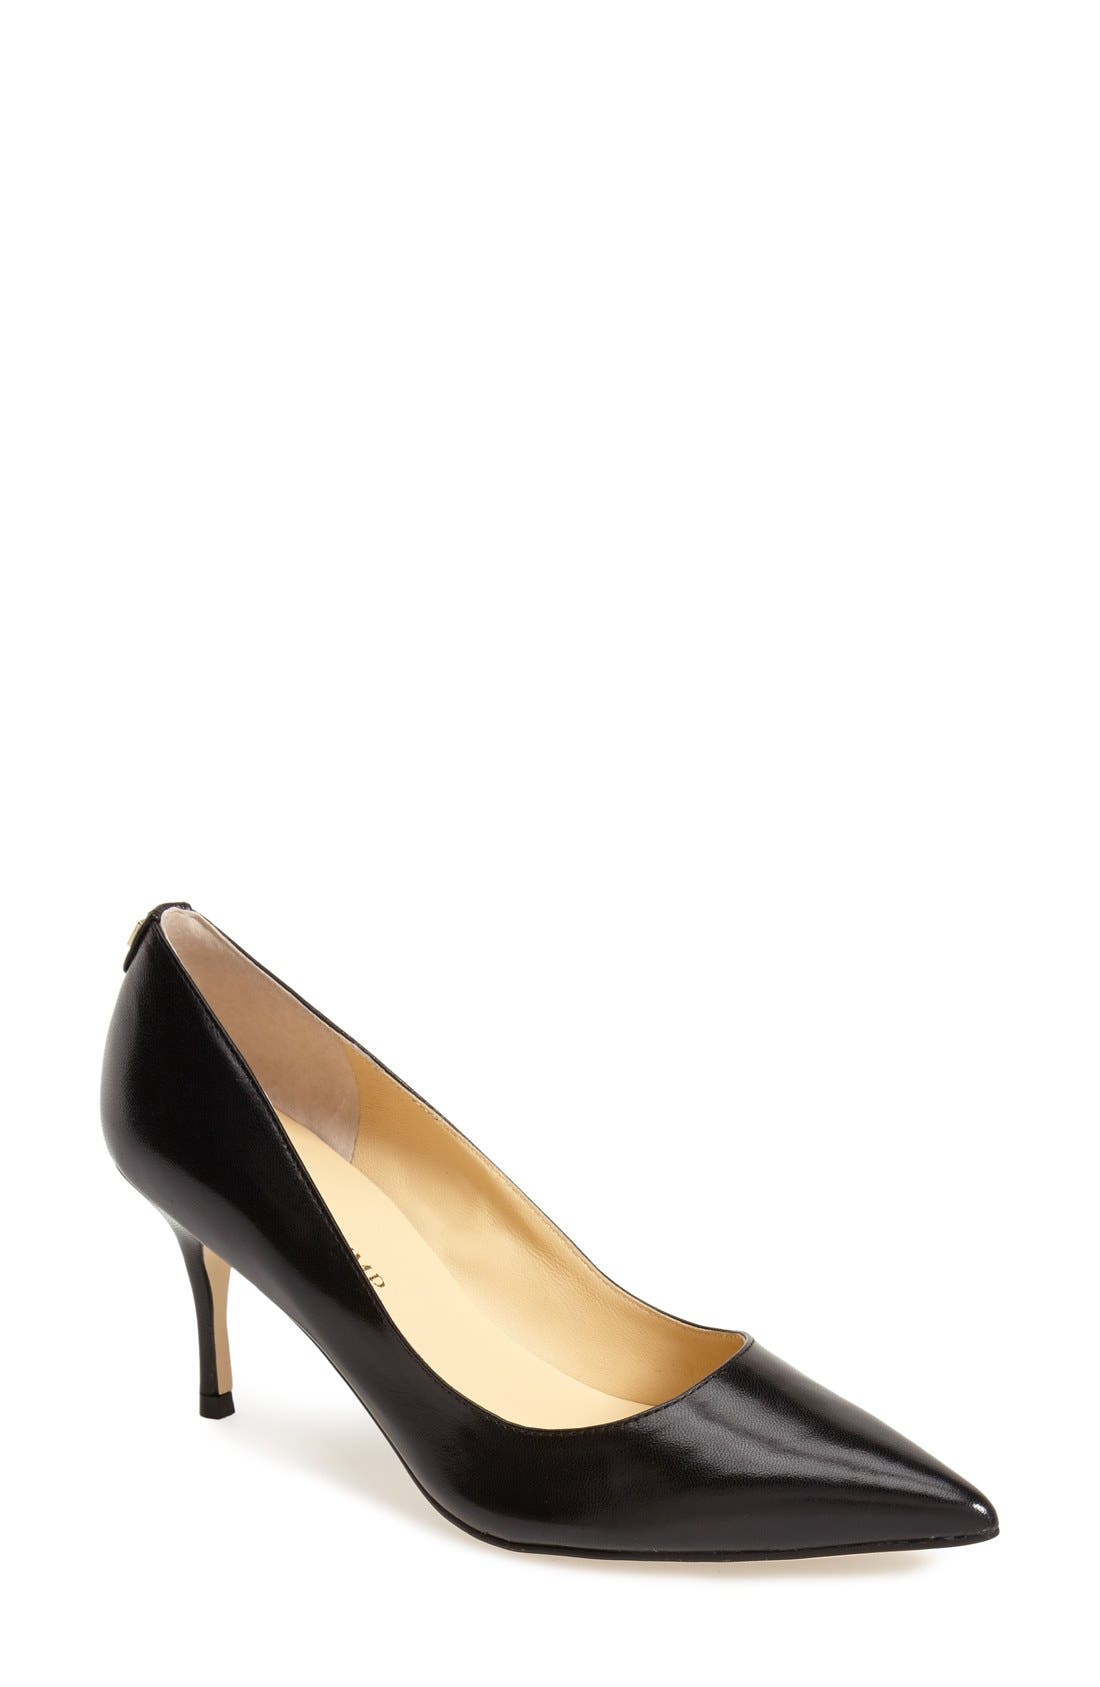 'Boni' Pointy Toe Pump,                         Main,                         color, 001